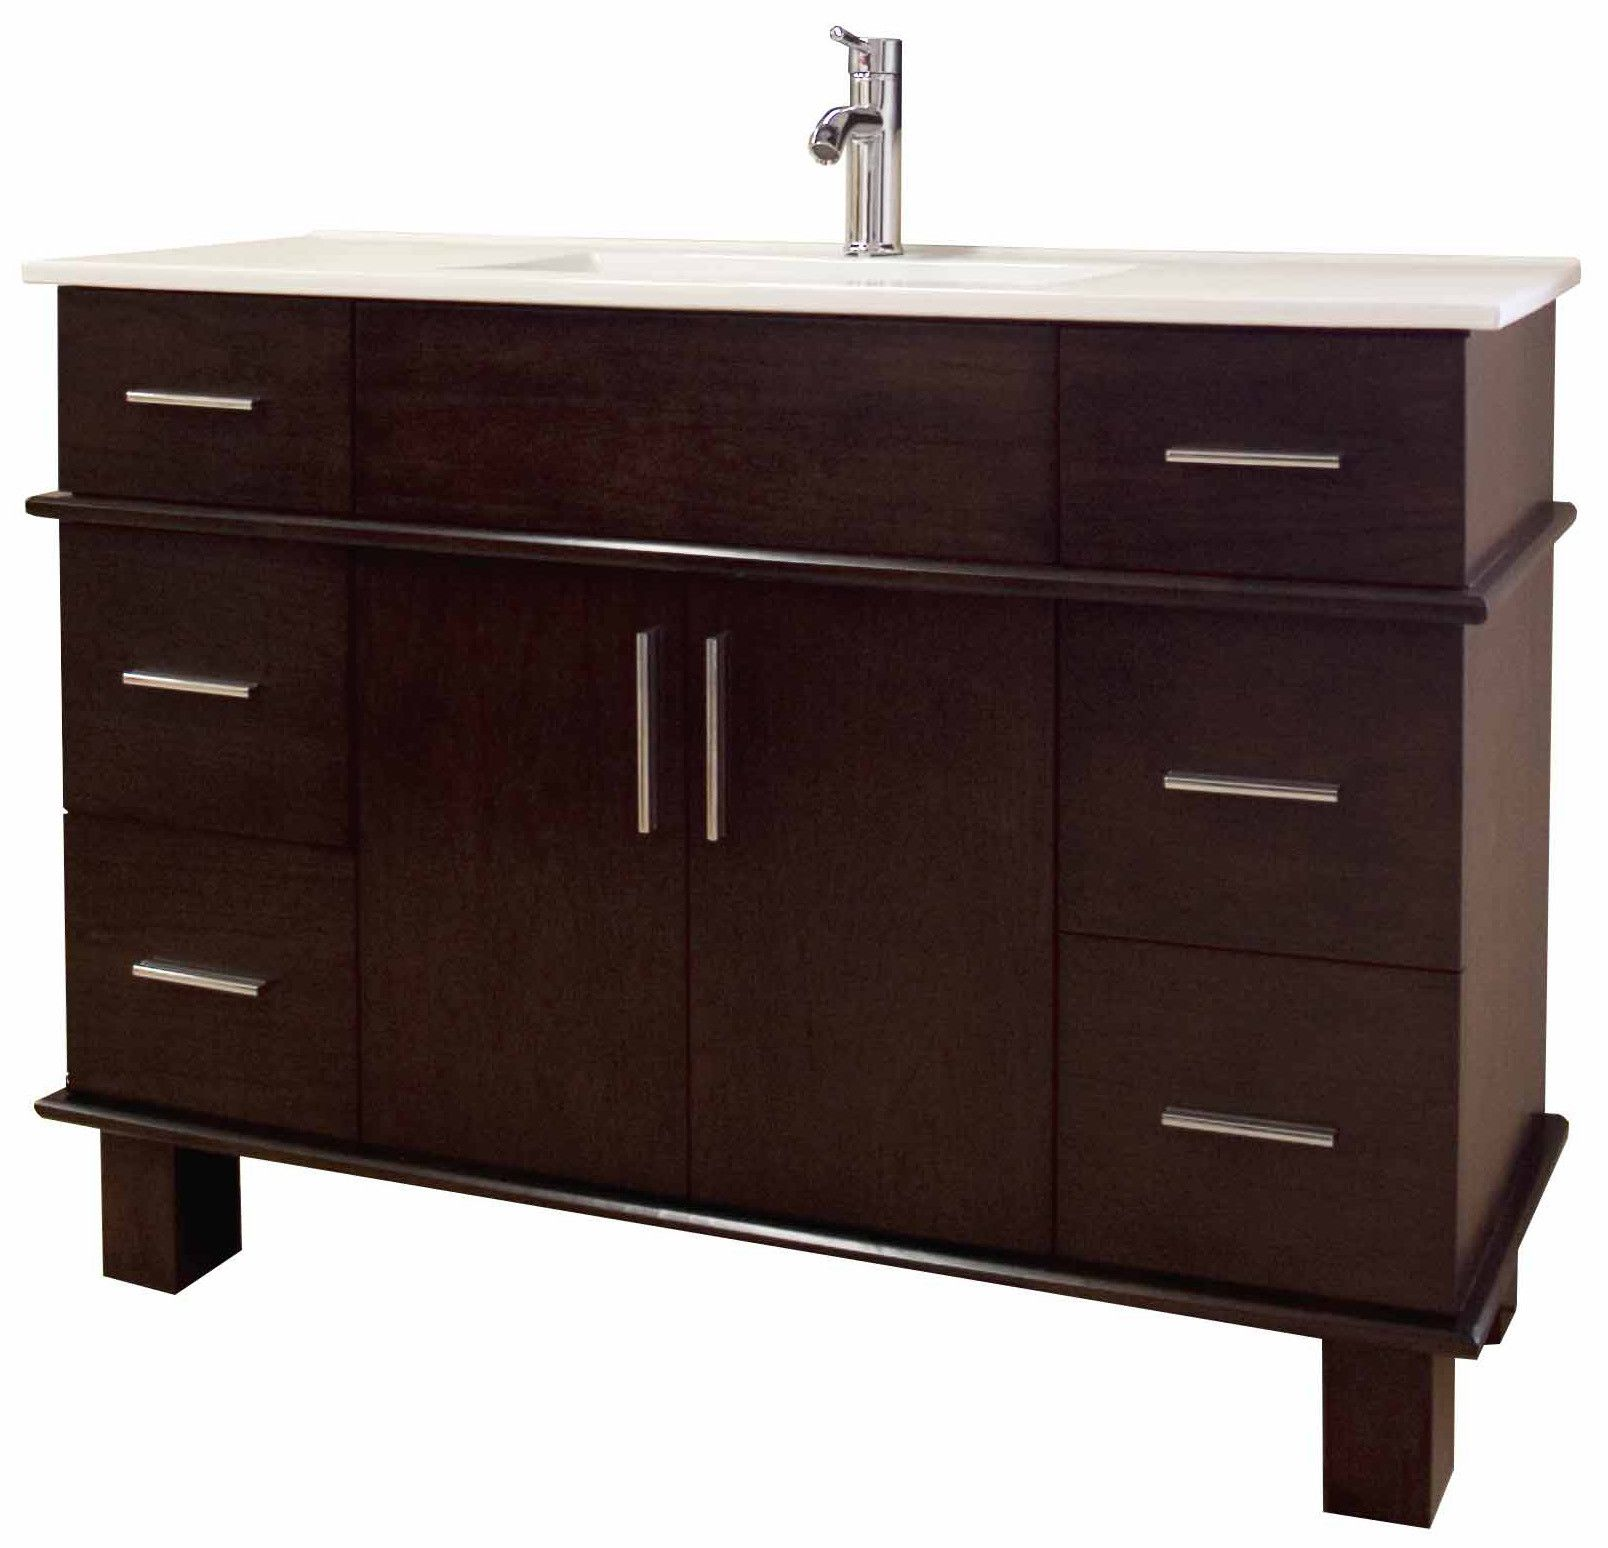 foremost sinks on basin unit small affordable breathtaking ebay amazon bathroom pertaining combo units of wayfair to unique size sink vanities and ideas vanity full top throughout